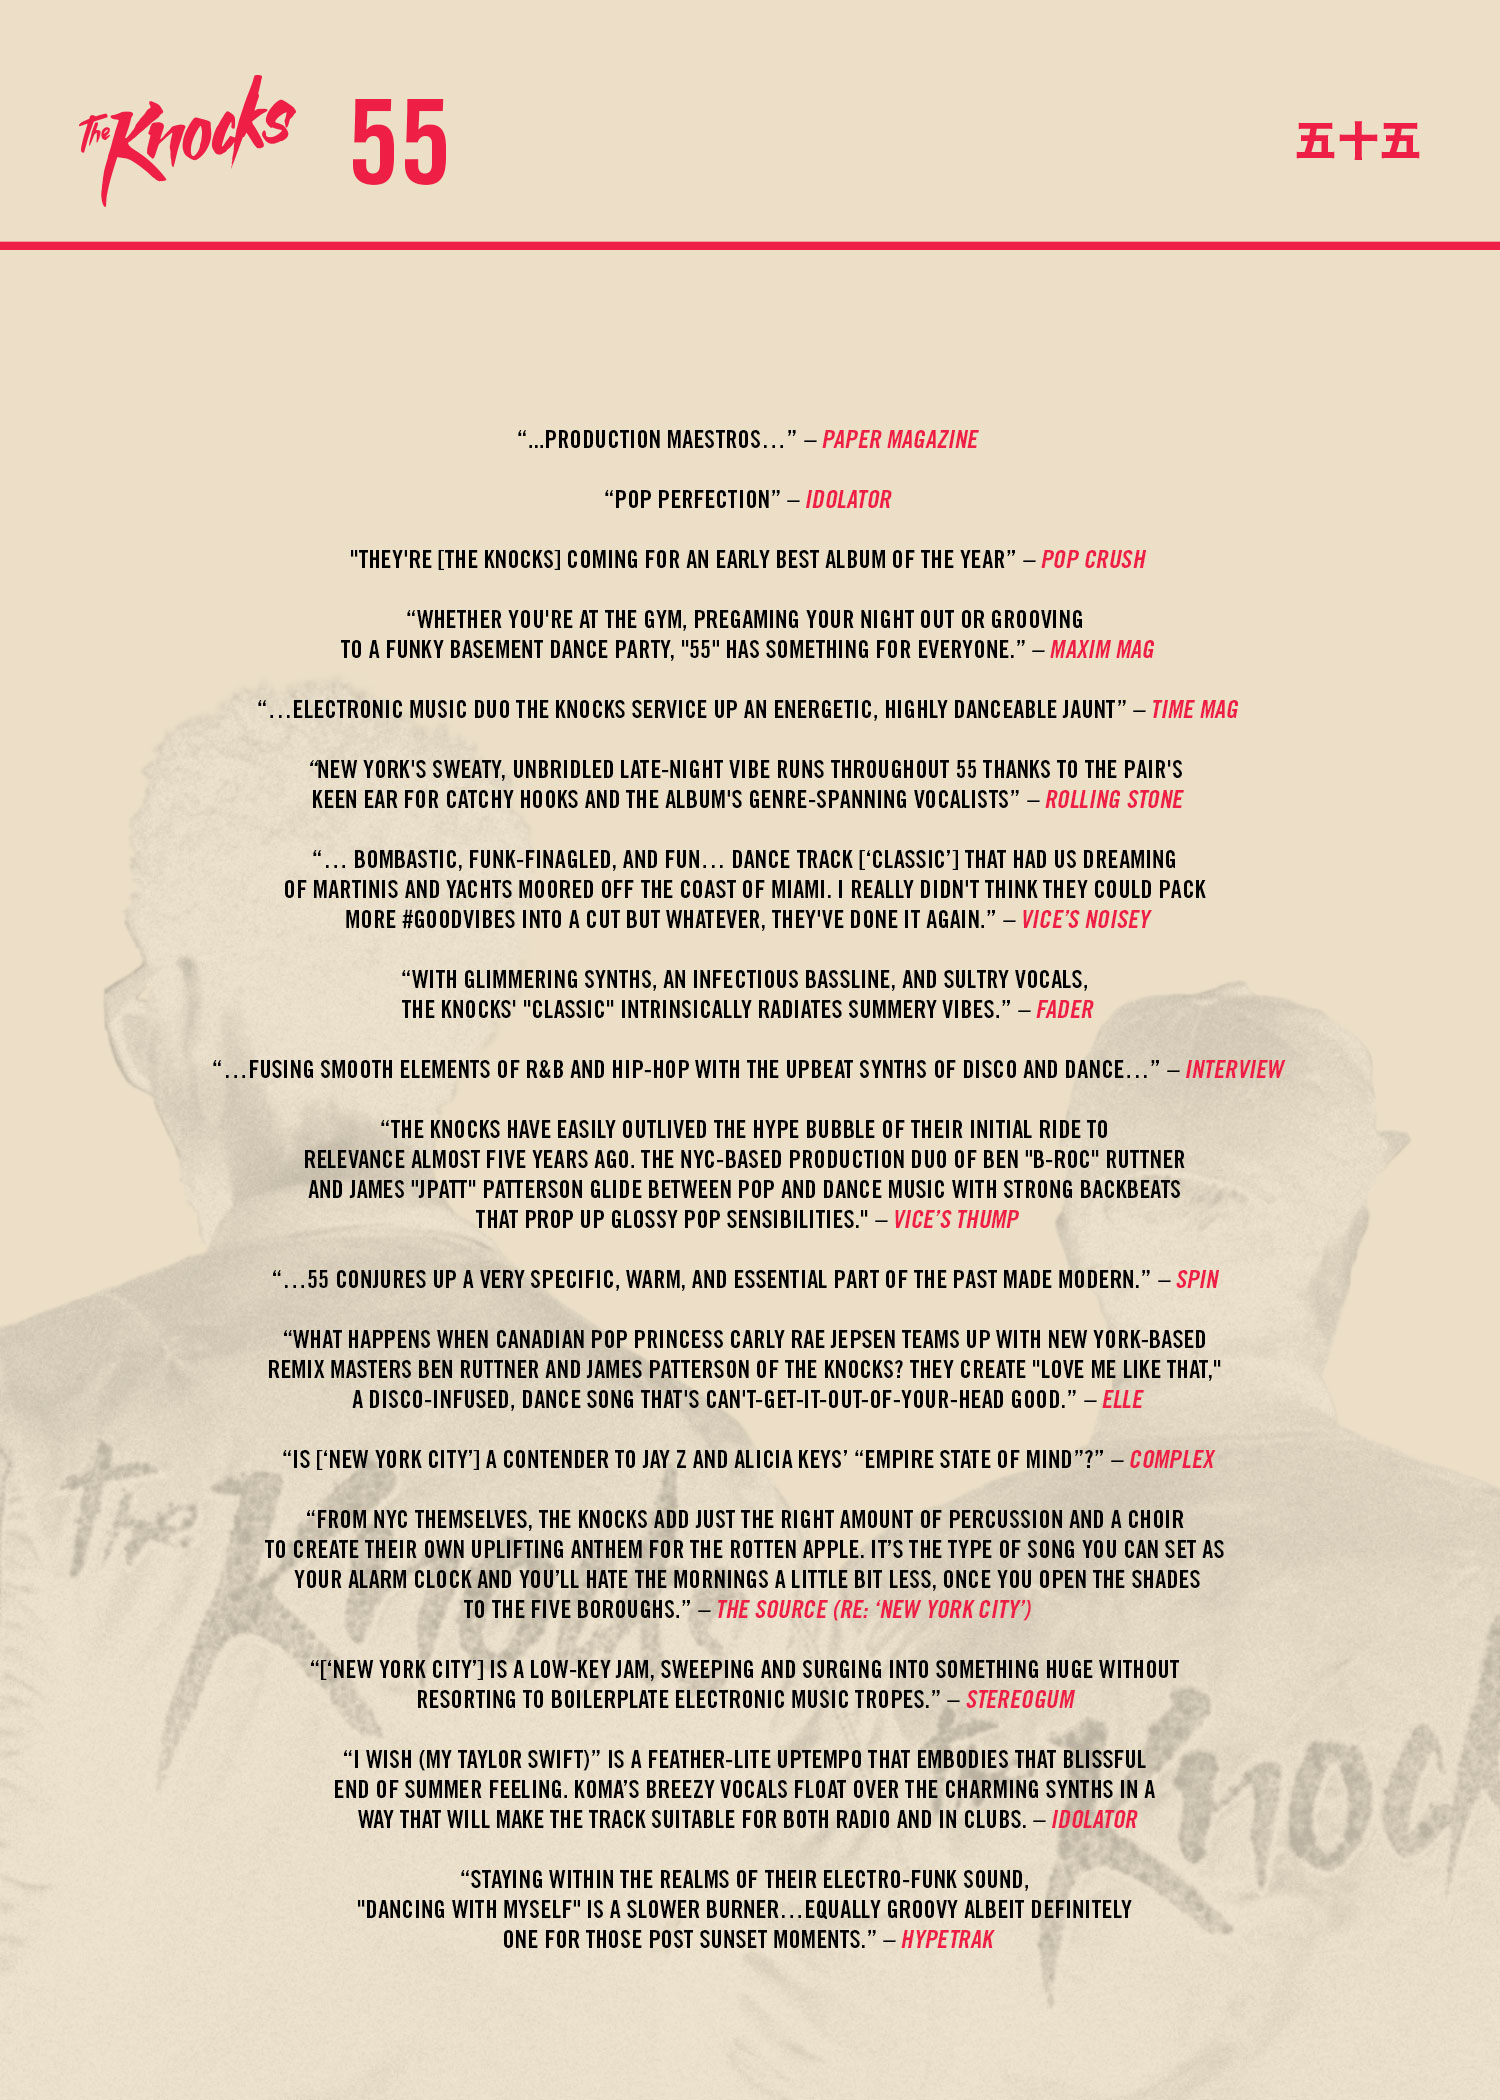 KNOCKS_55-Album-Quote-Sheet_v2